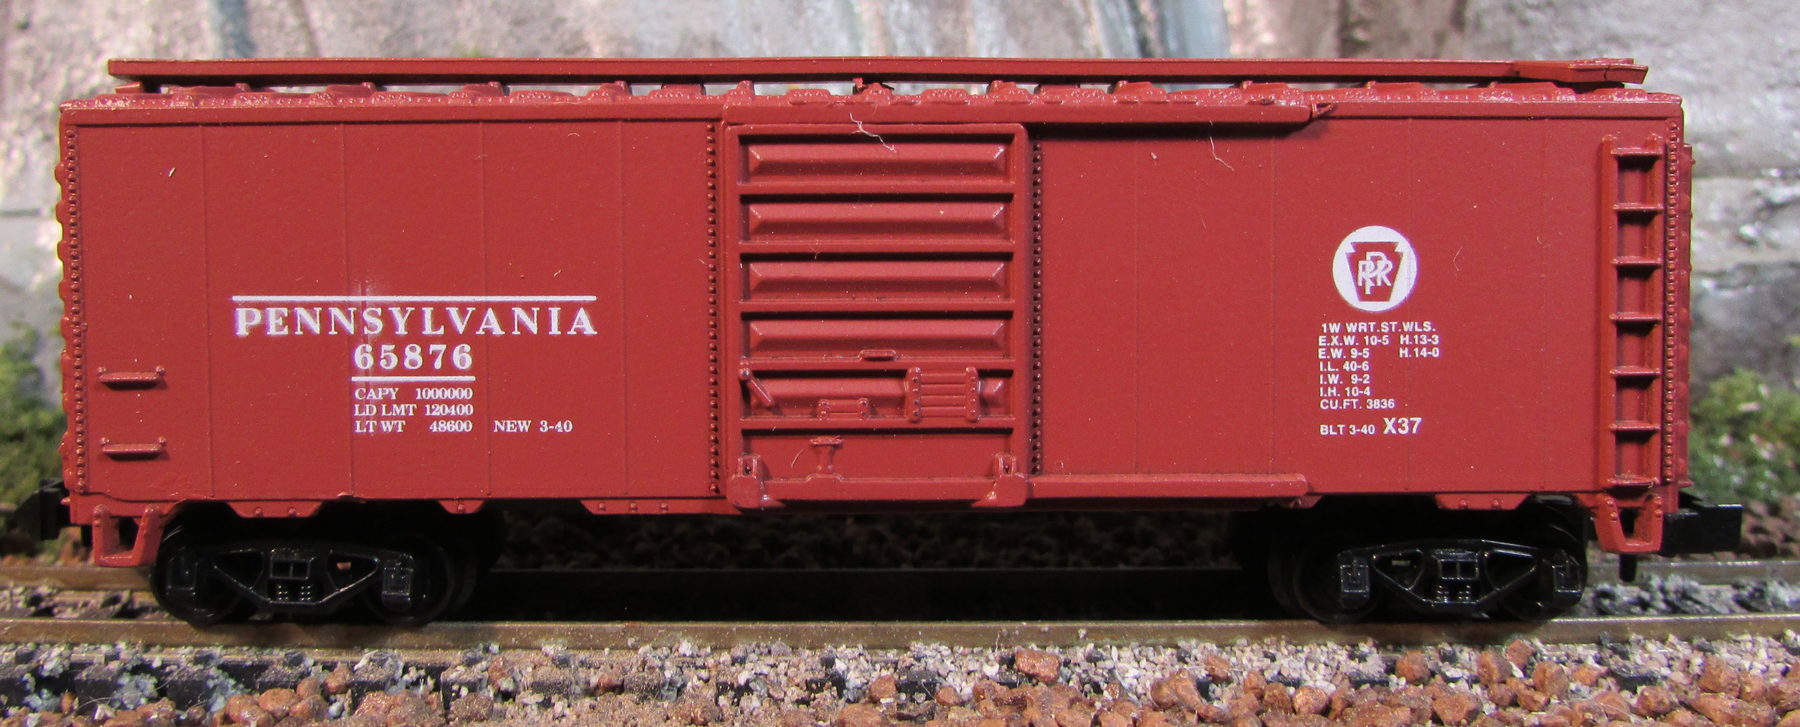 N Scale - Third Rail Graphics - 139-2 - Boxcar, 40 Foot, PS-1 - Pennsylvania - 65876